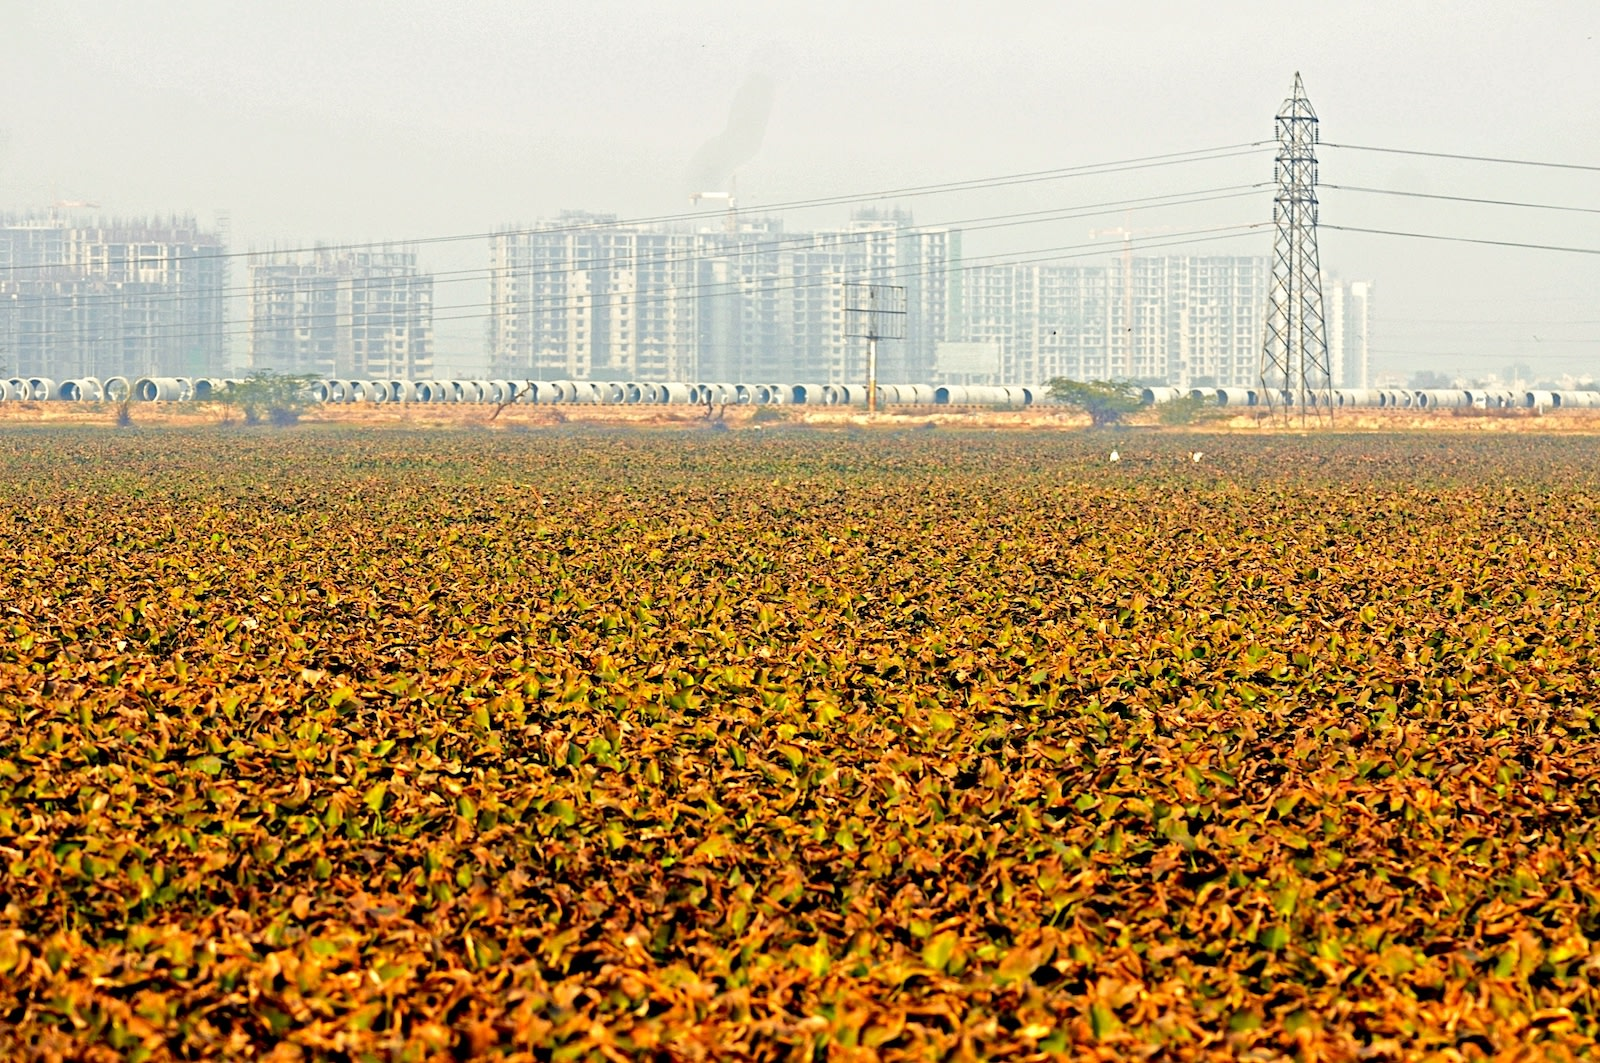 Rampant construction threatens to smother Basai's ecosystem, as does the proliferation of water hyacinth plants that blanket the water's surface in some parts. Photo: T. R. Shankar Raman - CC BY-SA 3.0